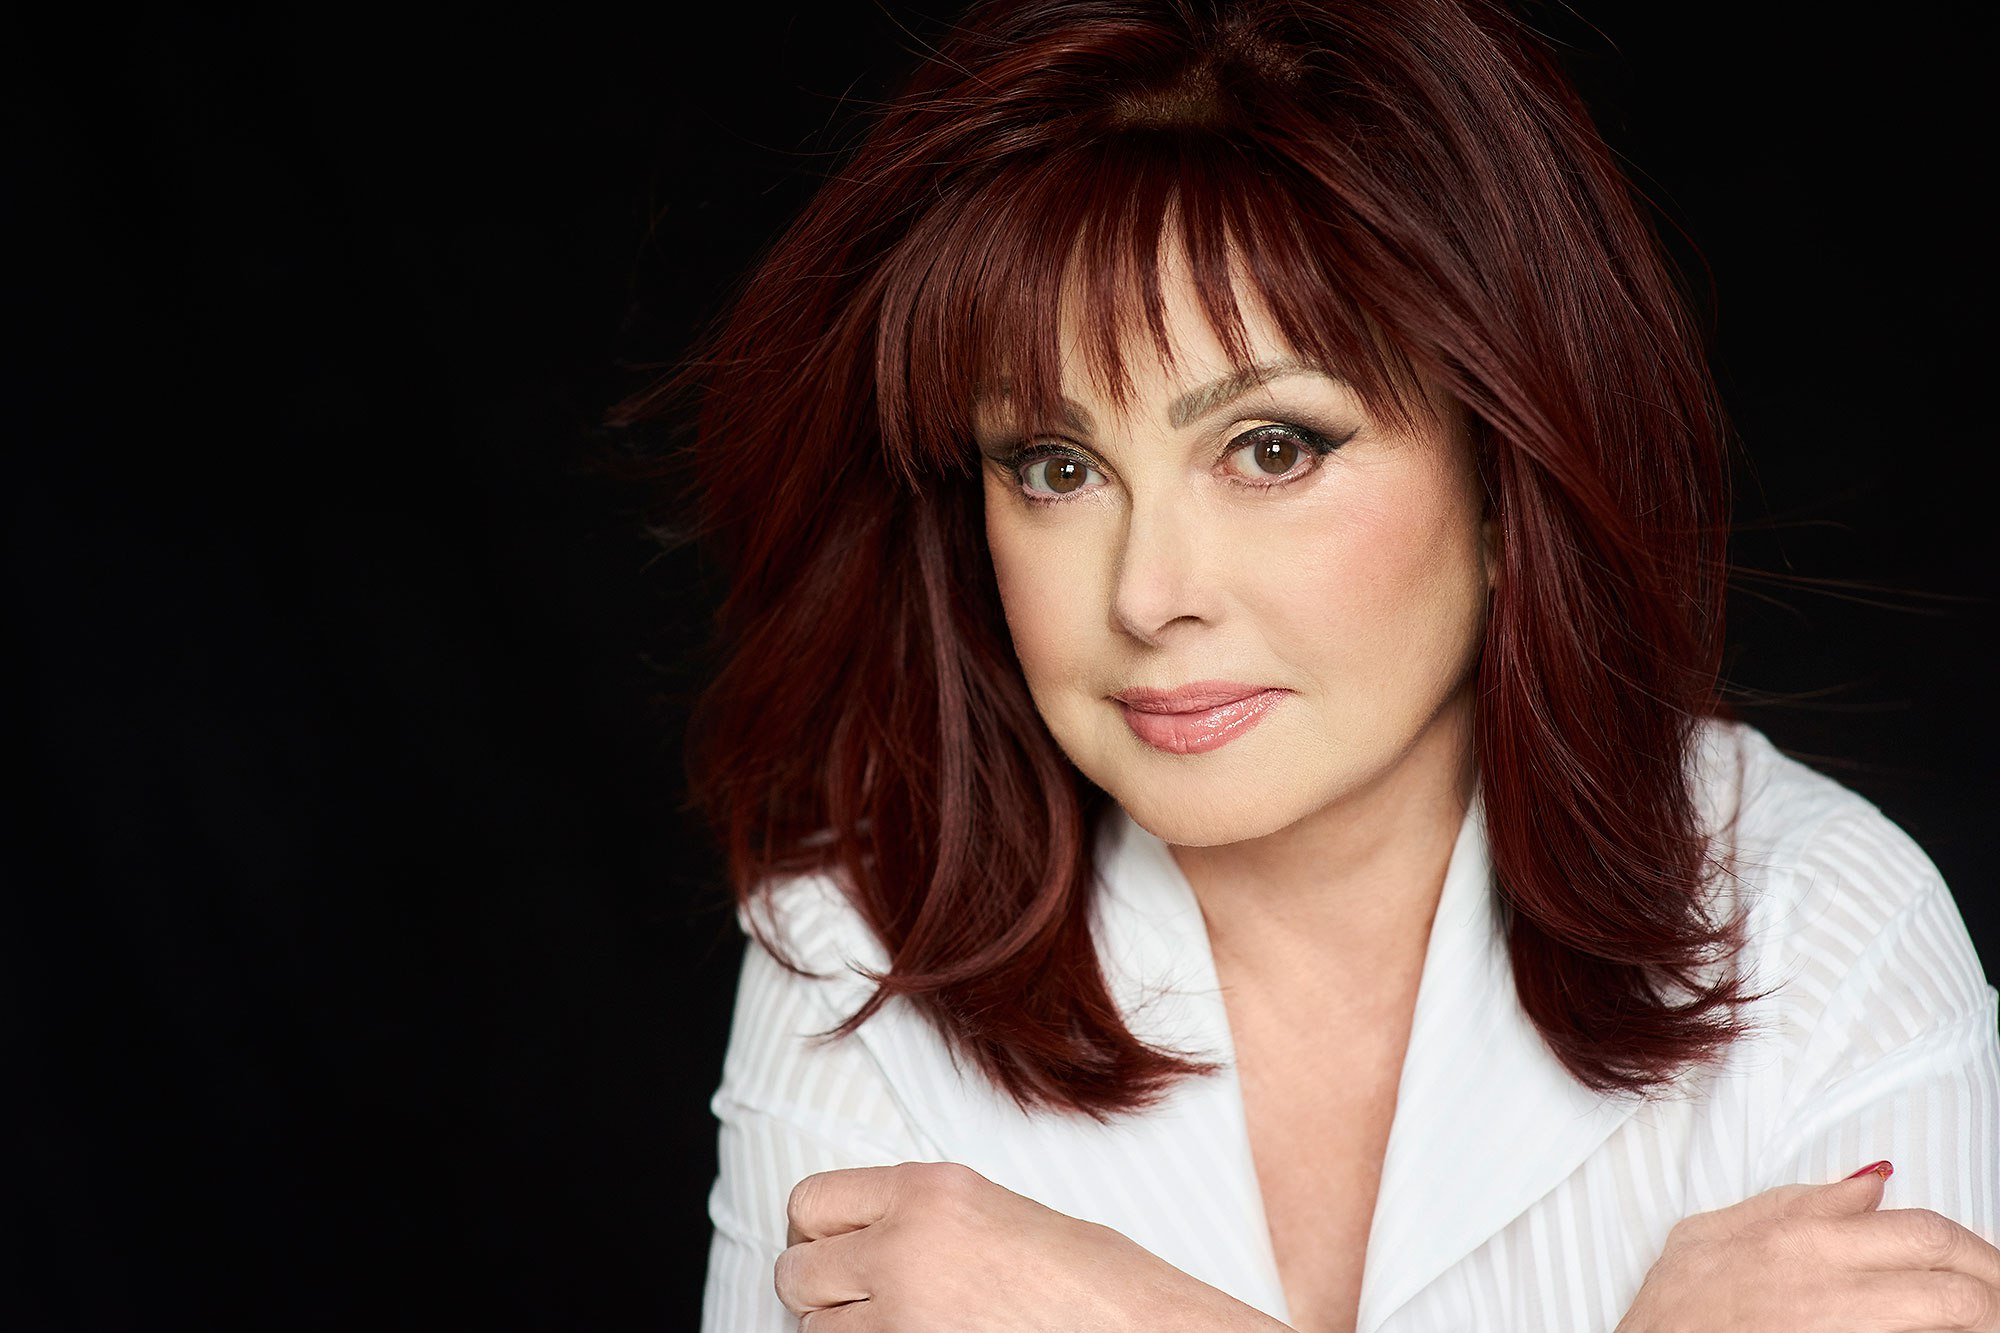 Naomi Judd Opens Up About Her 'Shocking' Battle with Depression with Hopes to Help Others